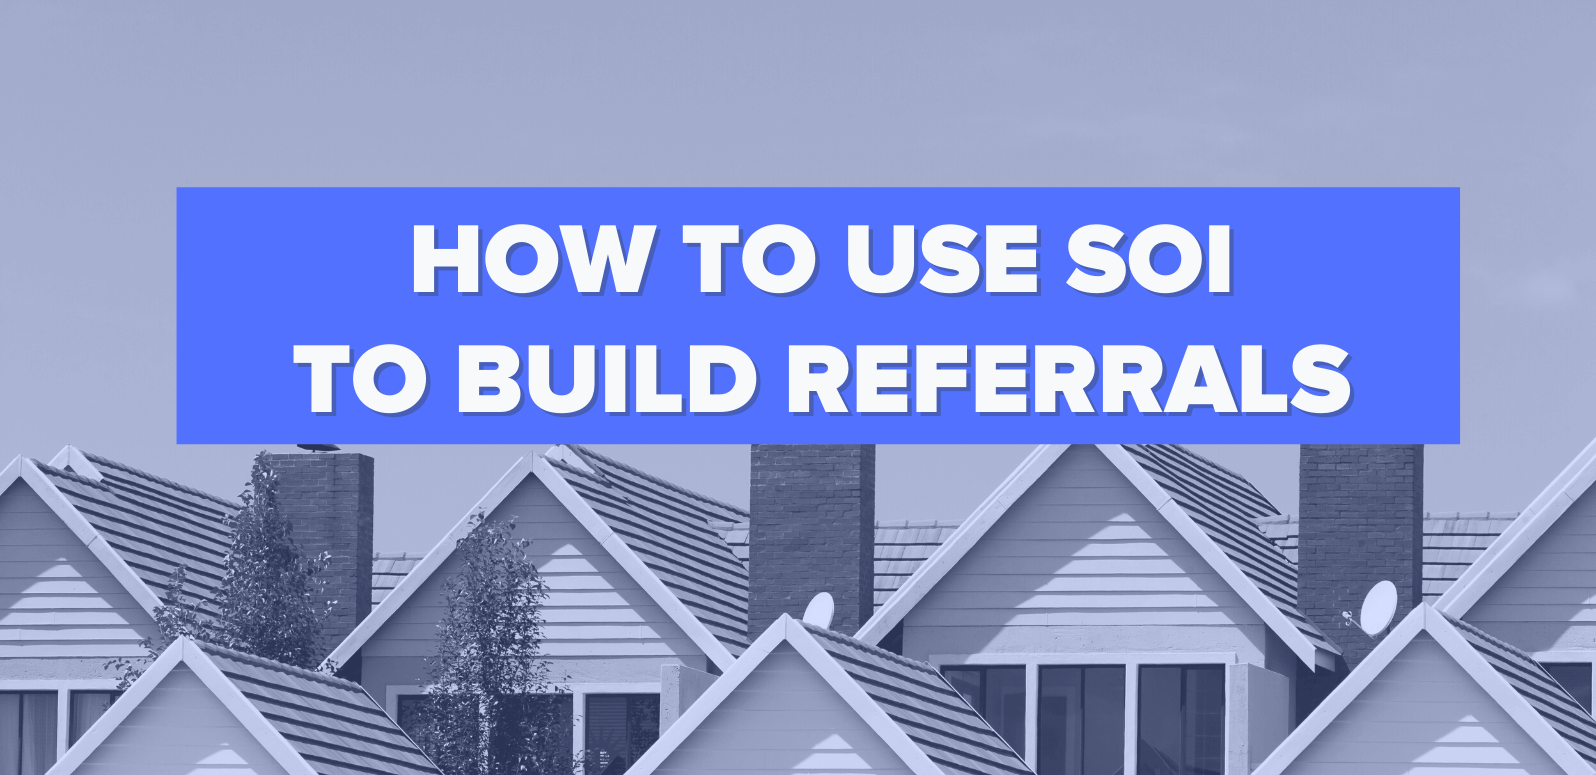 How to Use Your Sphere of Influence to Build the Ultimate Real Estate Referral Machine